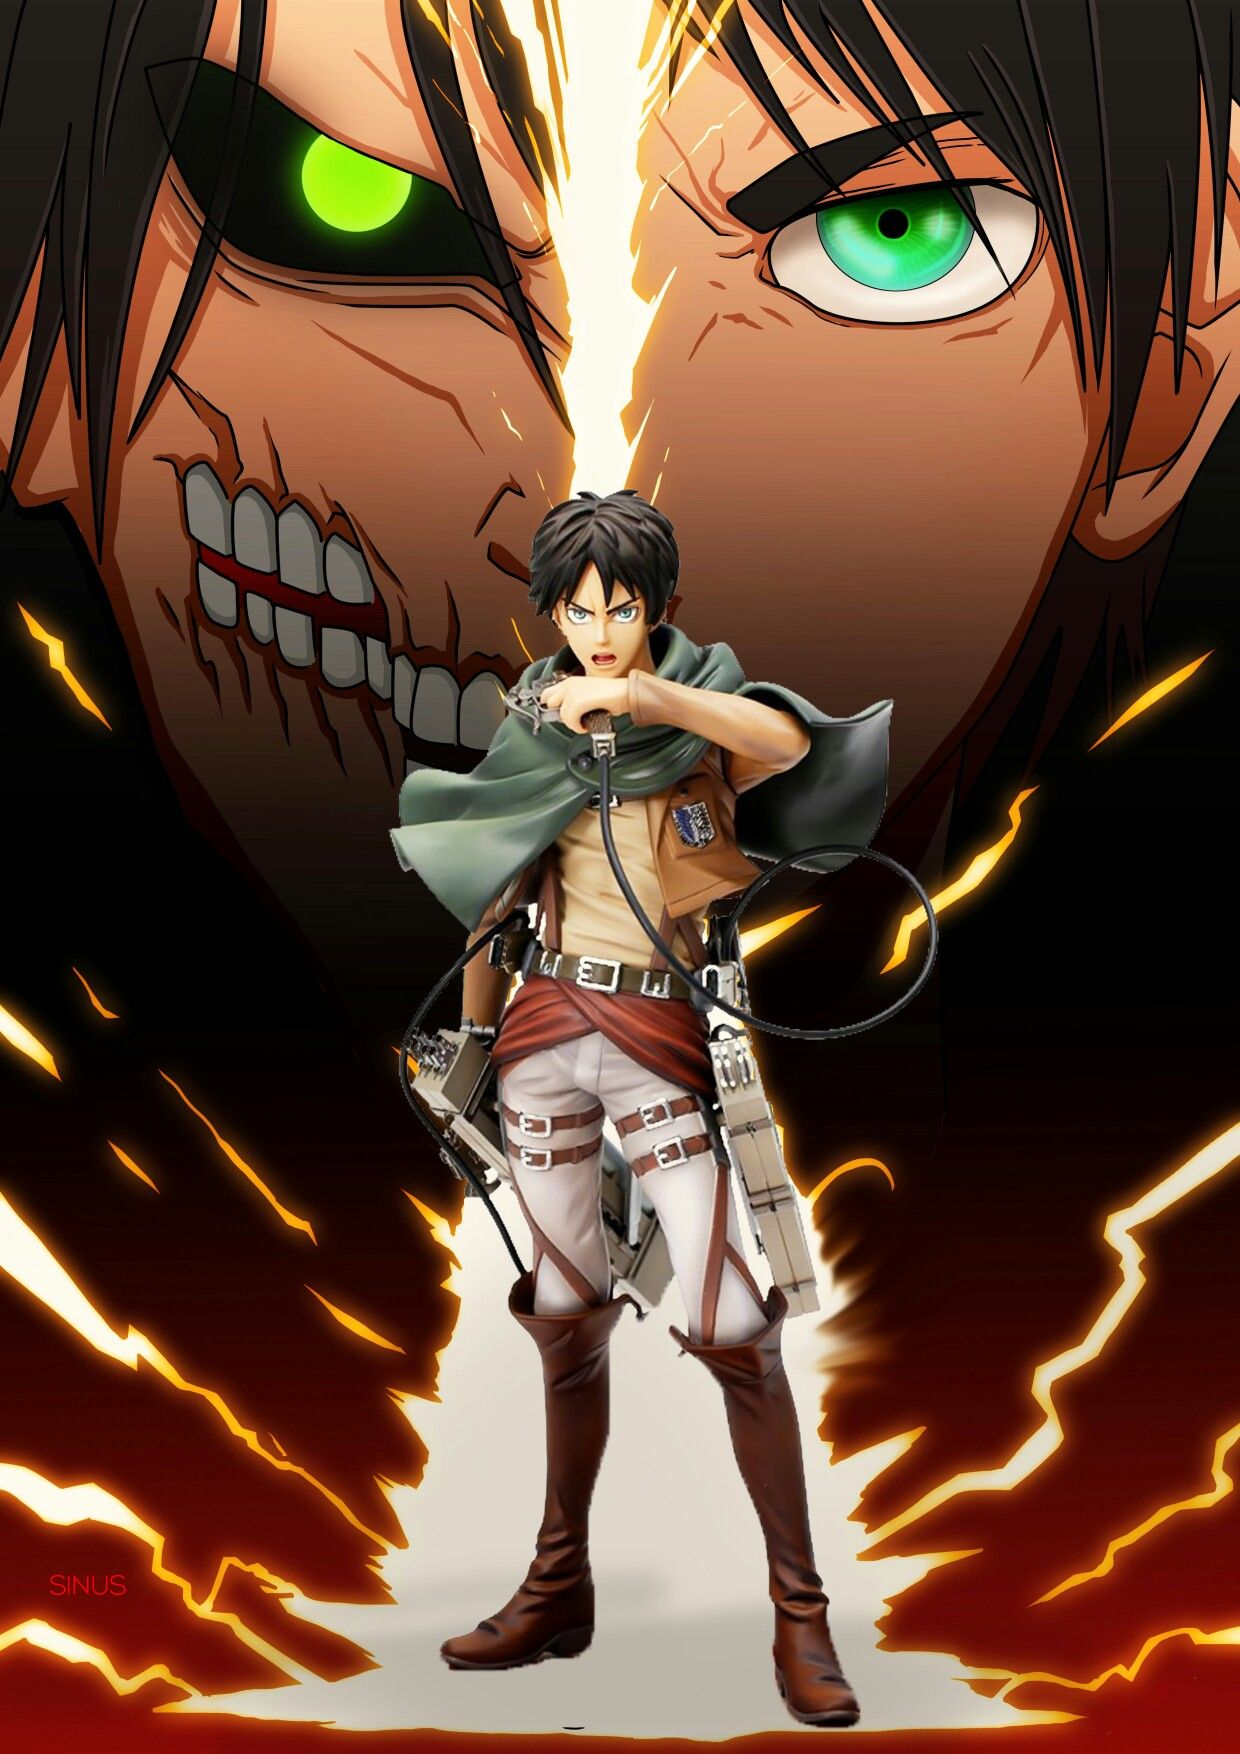 Dummies has always stood for taking on complex concepts and making them easy to understand. Free download Eren Attack On Titan Wallpaper ~ Joanna-dee.com